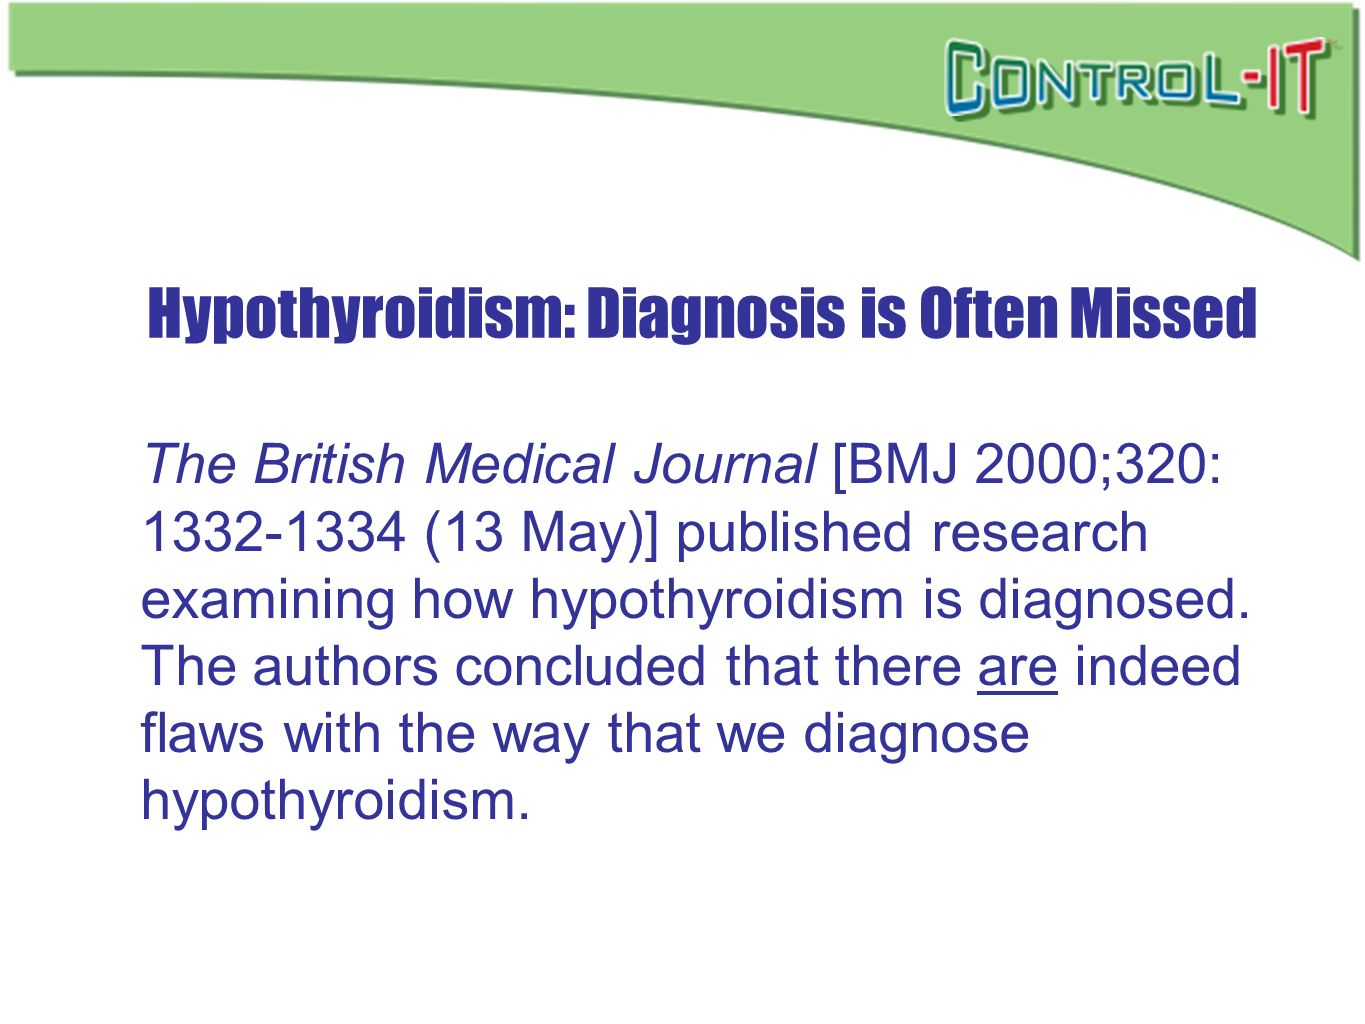 Hypothyroidism: Diagnosis is Often Missed The British Medical Journal [BMJ 2000;320: 1332-1334 (13 May)] published research examining how hypothyroidi